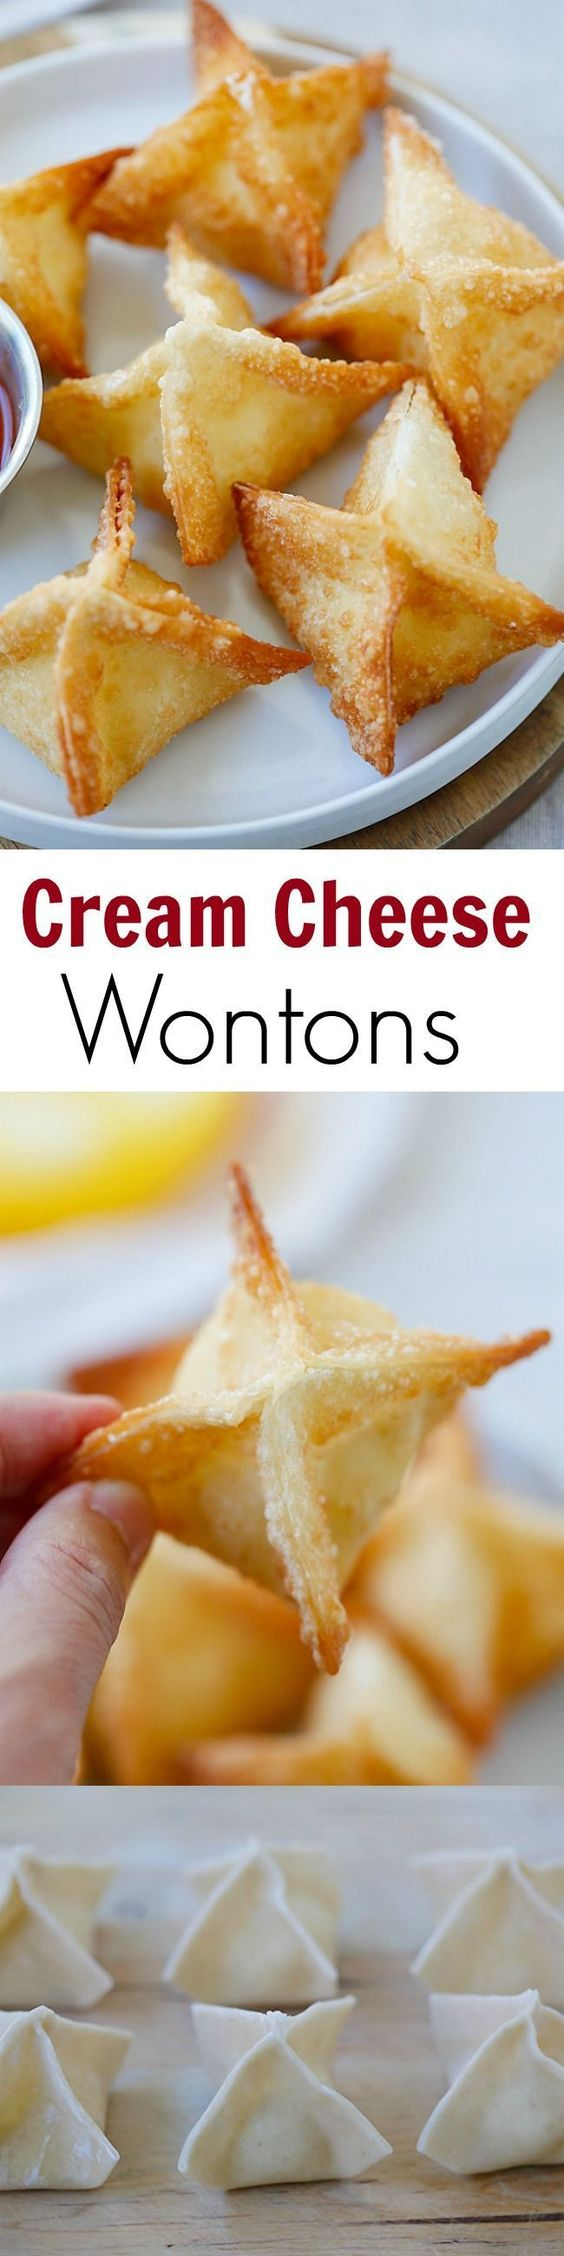 Wonton recipes, Cream cheese wontons and Cheese wontons on Pinterest